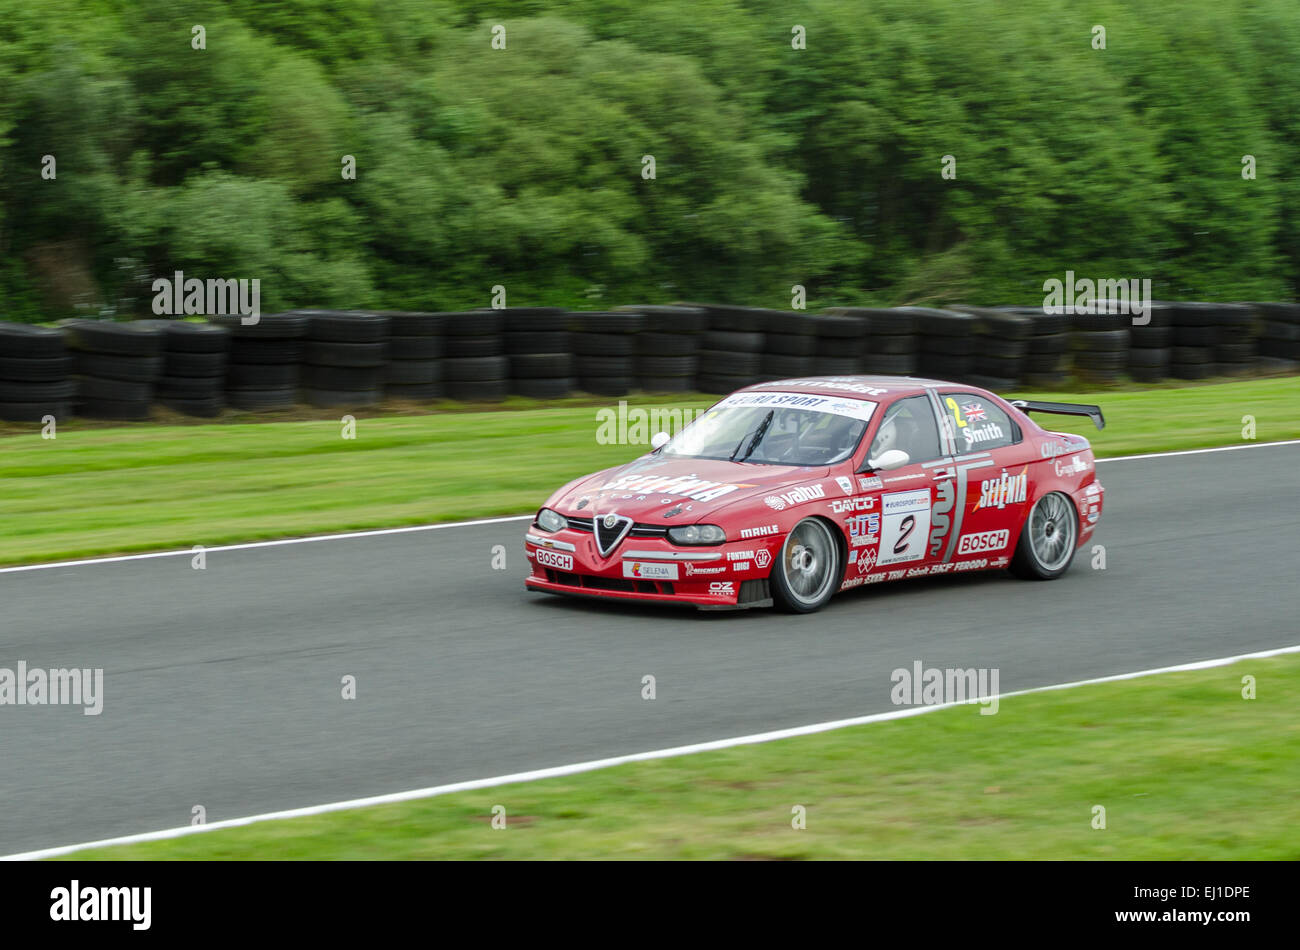 A classic Alfa Romeo competes in a Classic Touring cars race at Oulton Park race circuit - Stock Image